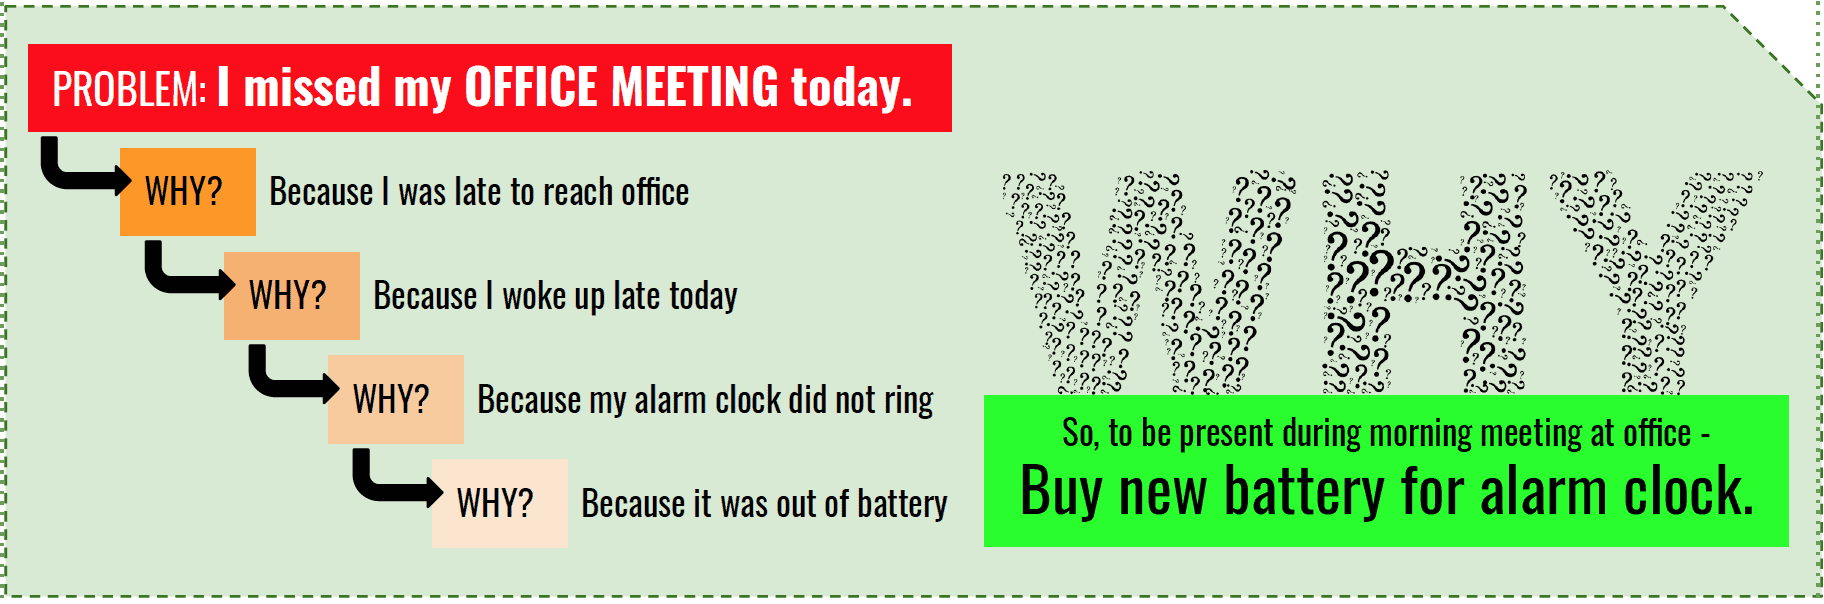 PROBLEM: I missed my OFFICE MEETING today.